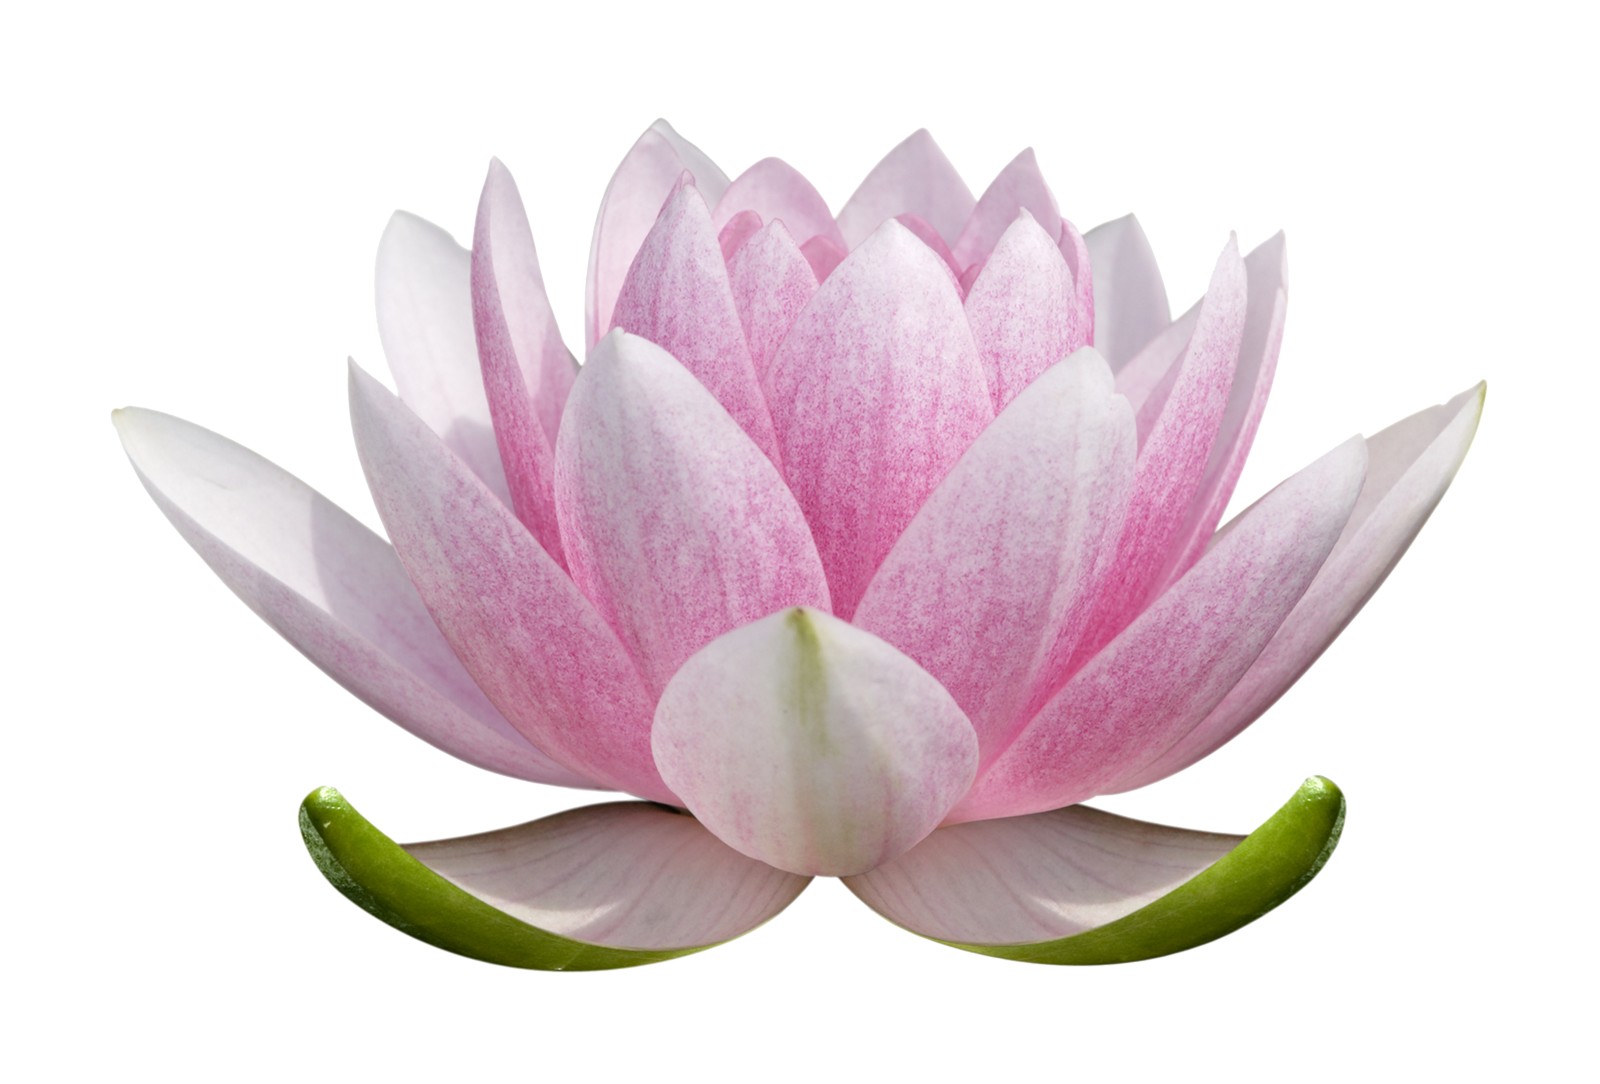 Lotus flowers png. Flower images free download